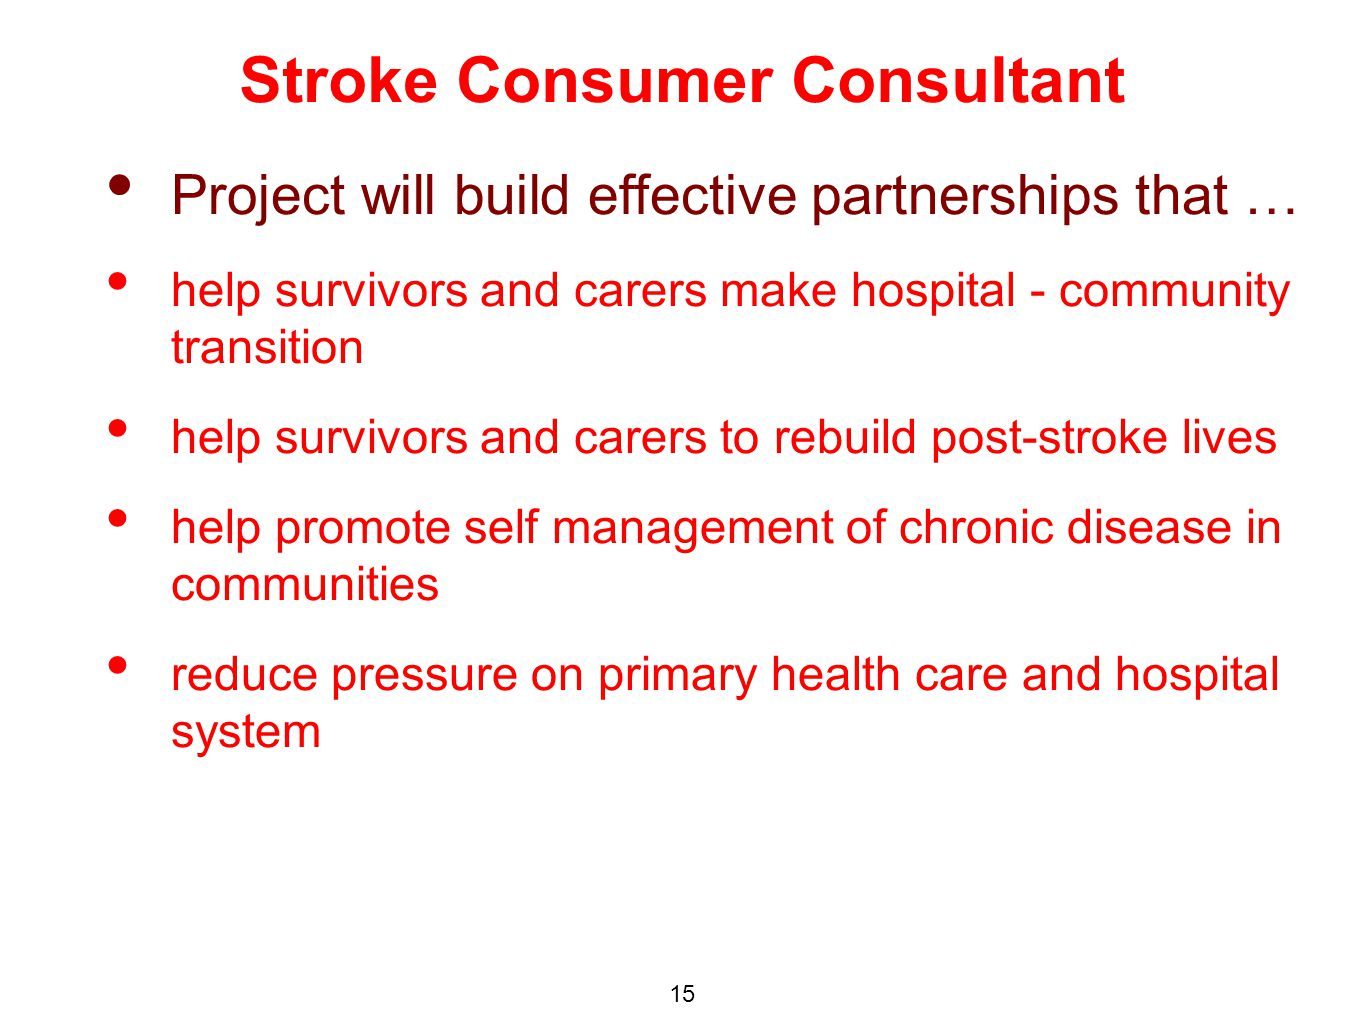 Project will build effective partnerships that … help survivors and carers make hospital - community transition help survivors and carers to rebuild post-stroke lives help promote self management of chronic disease in communities reduce pressure on primary health care and hospital system Stroke Consumer Consultant 15